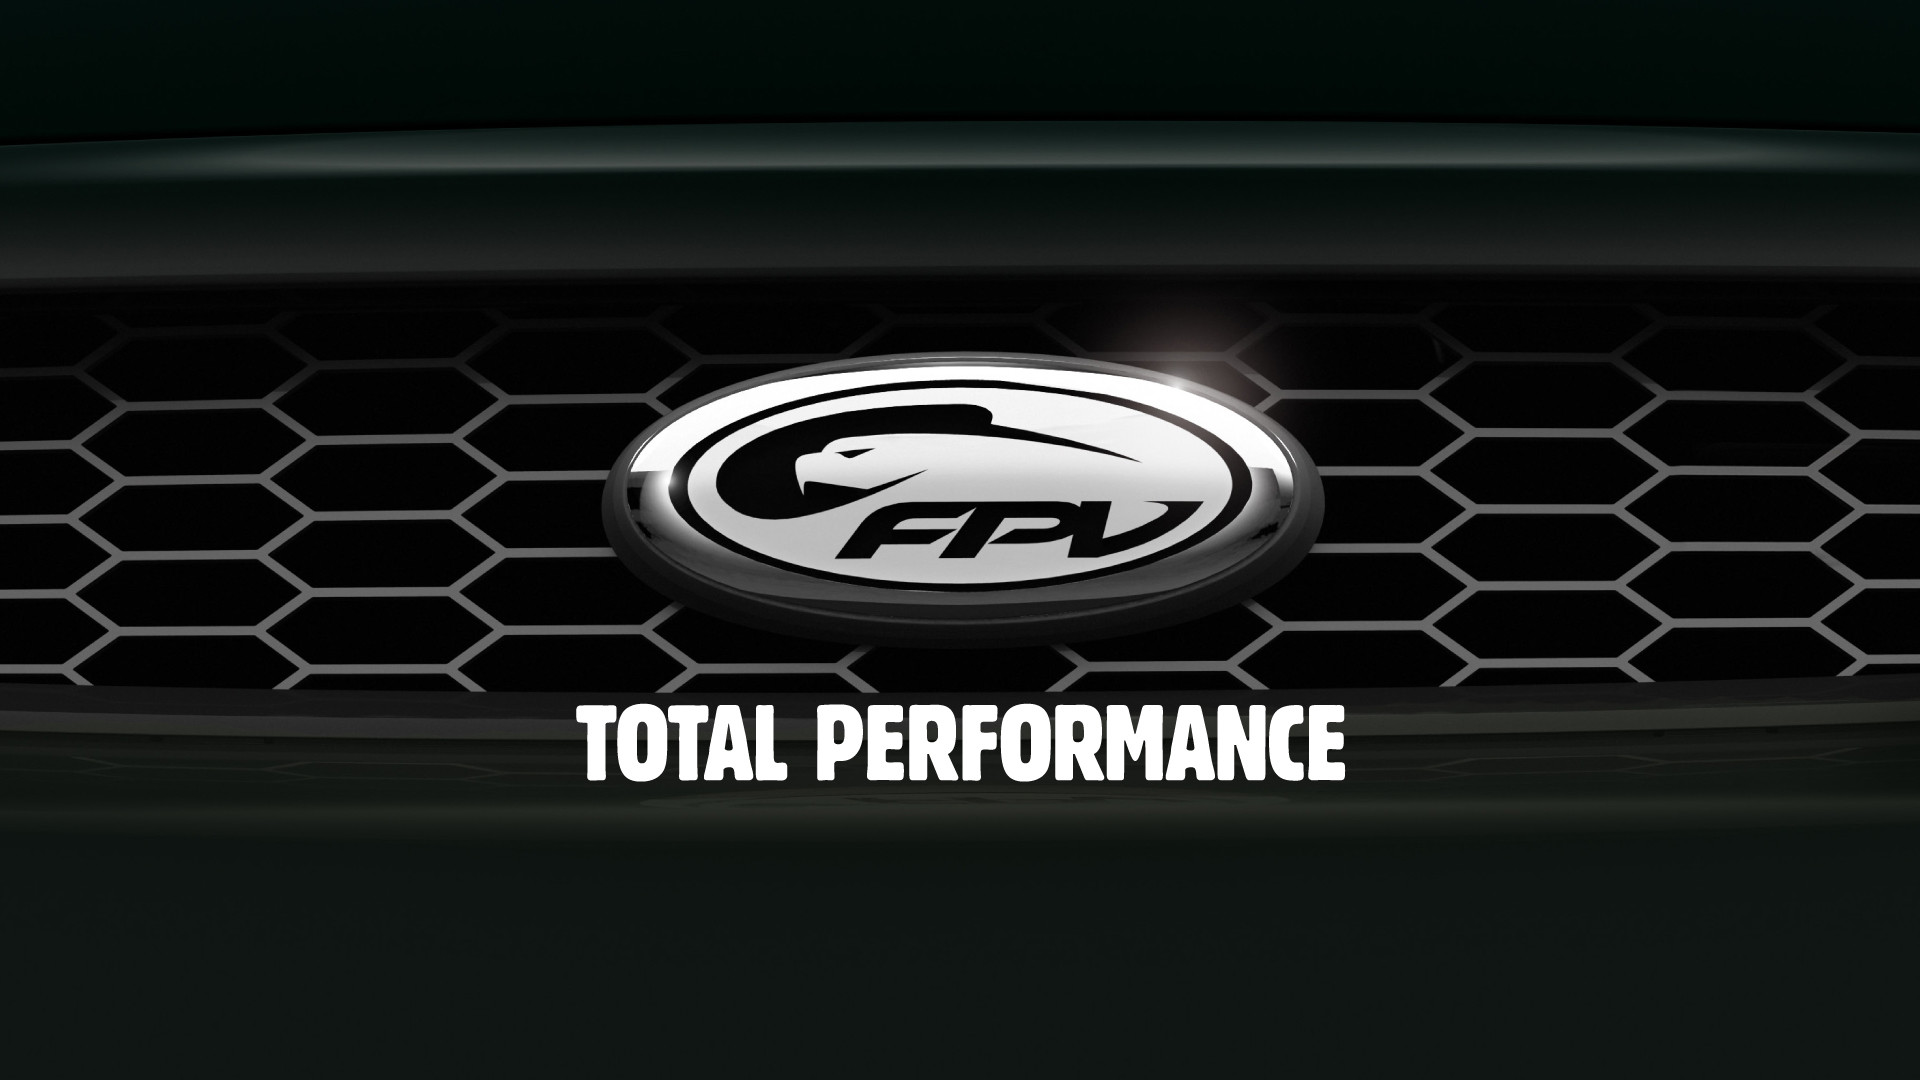 Ford Performance Vehicles logo Download in HD Quality